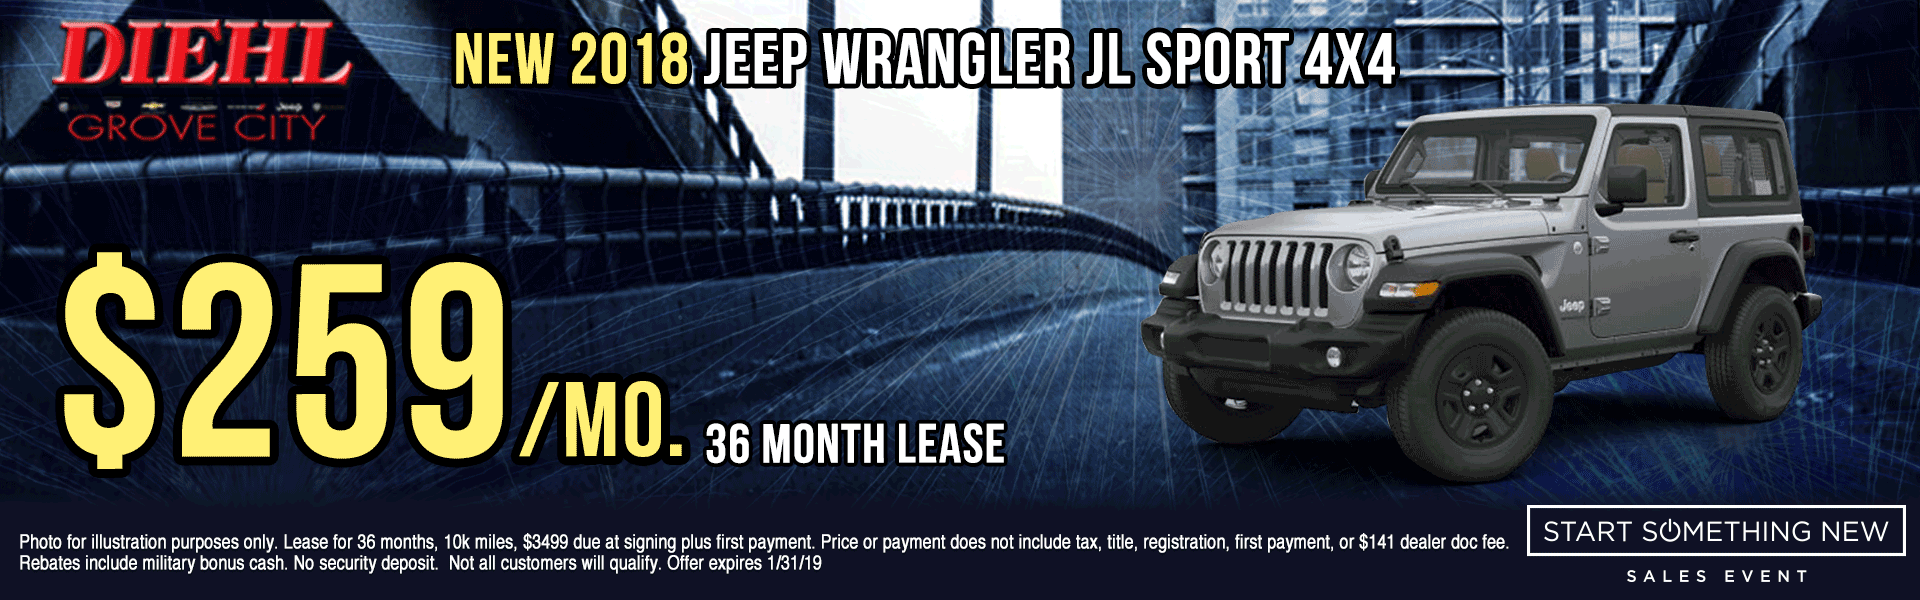 J1324--2018-JEEP-WRANGLER-SPORT-4X4 Start Something New Sales Event Chrysler Specials Dodge Specials Jeep Specials RAM Specials grove city specials Diehl specials Diehl Automotive grove city lease specials